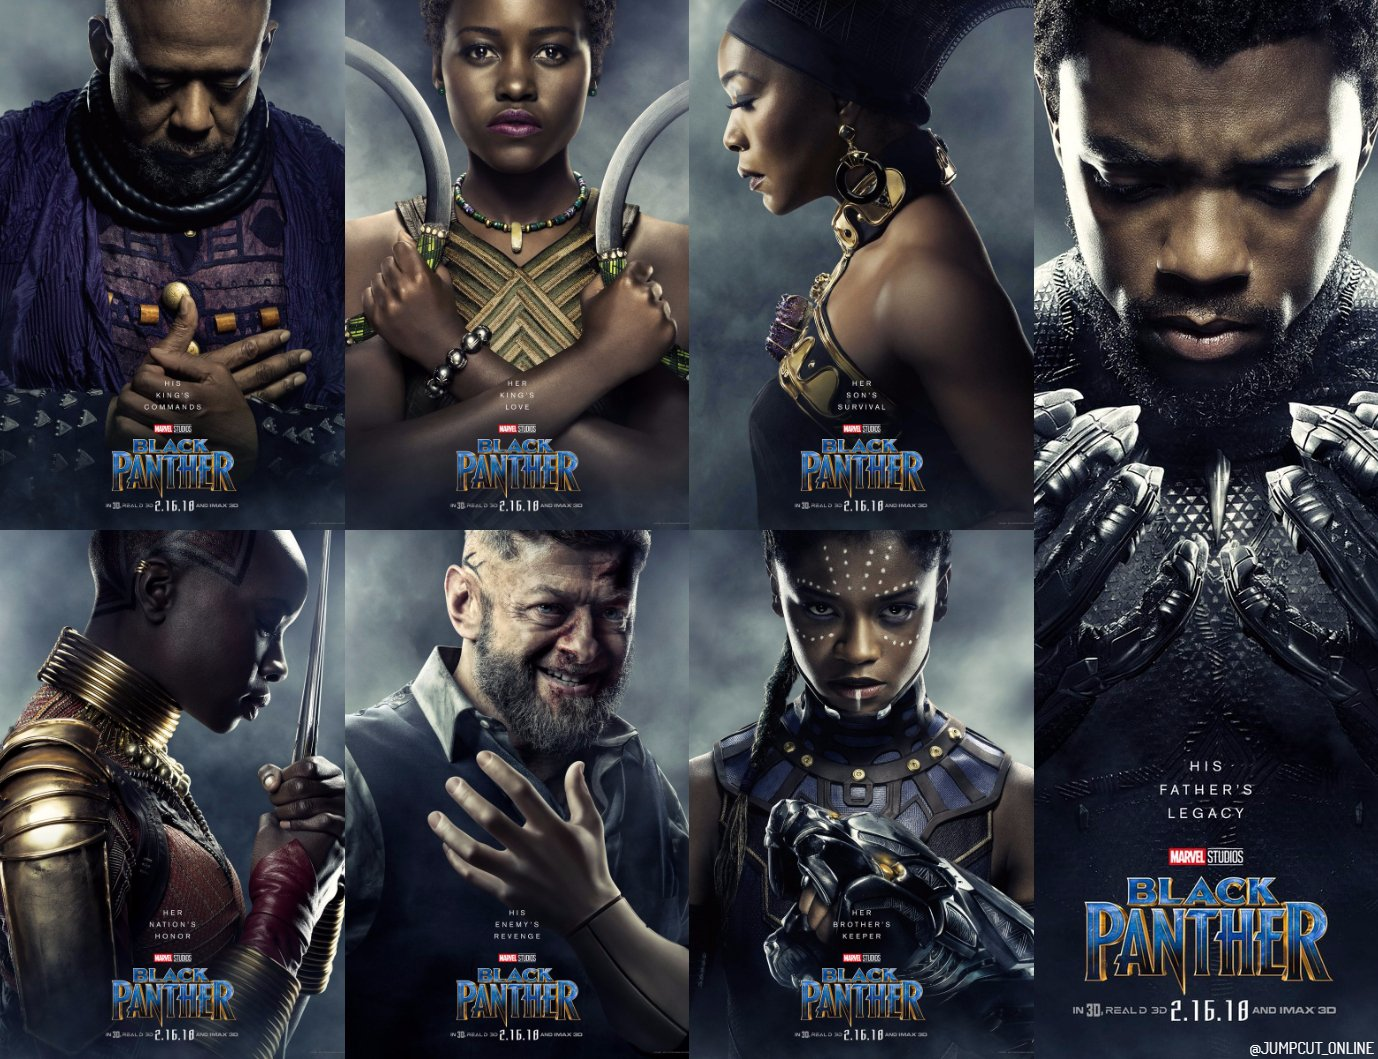 Black-Panther-character-posters.jpg